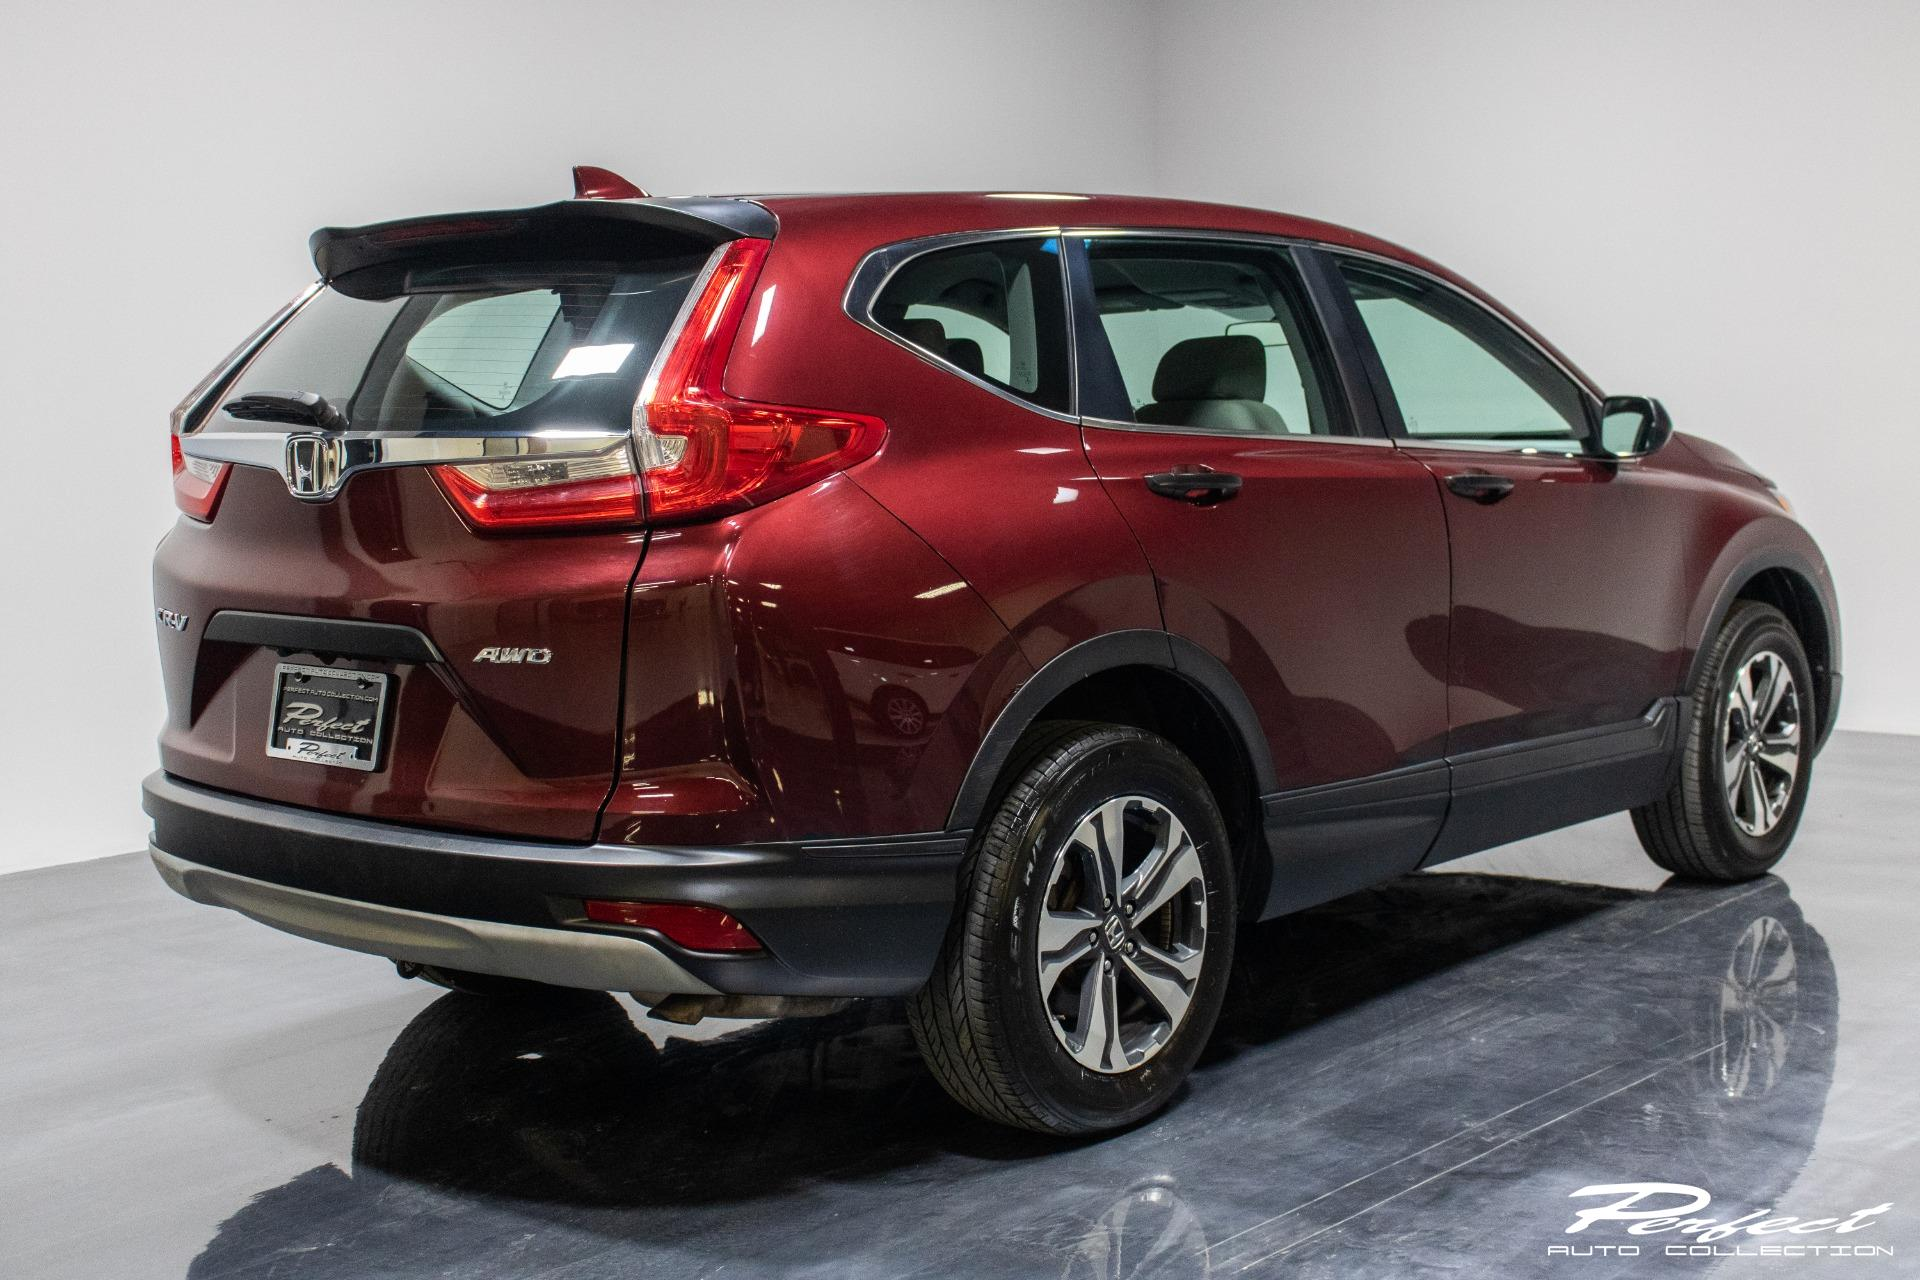 Used 2018 Honda CR-V LX Sport Utility 4D for sale Sold at Perfect Auto Collection in Akron OH 44310 4